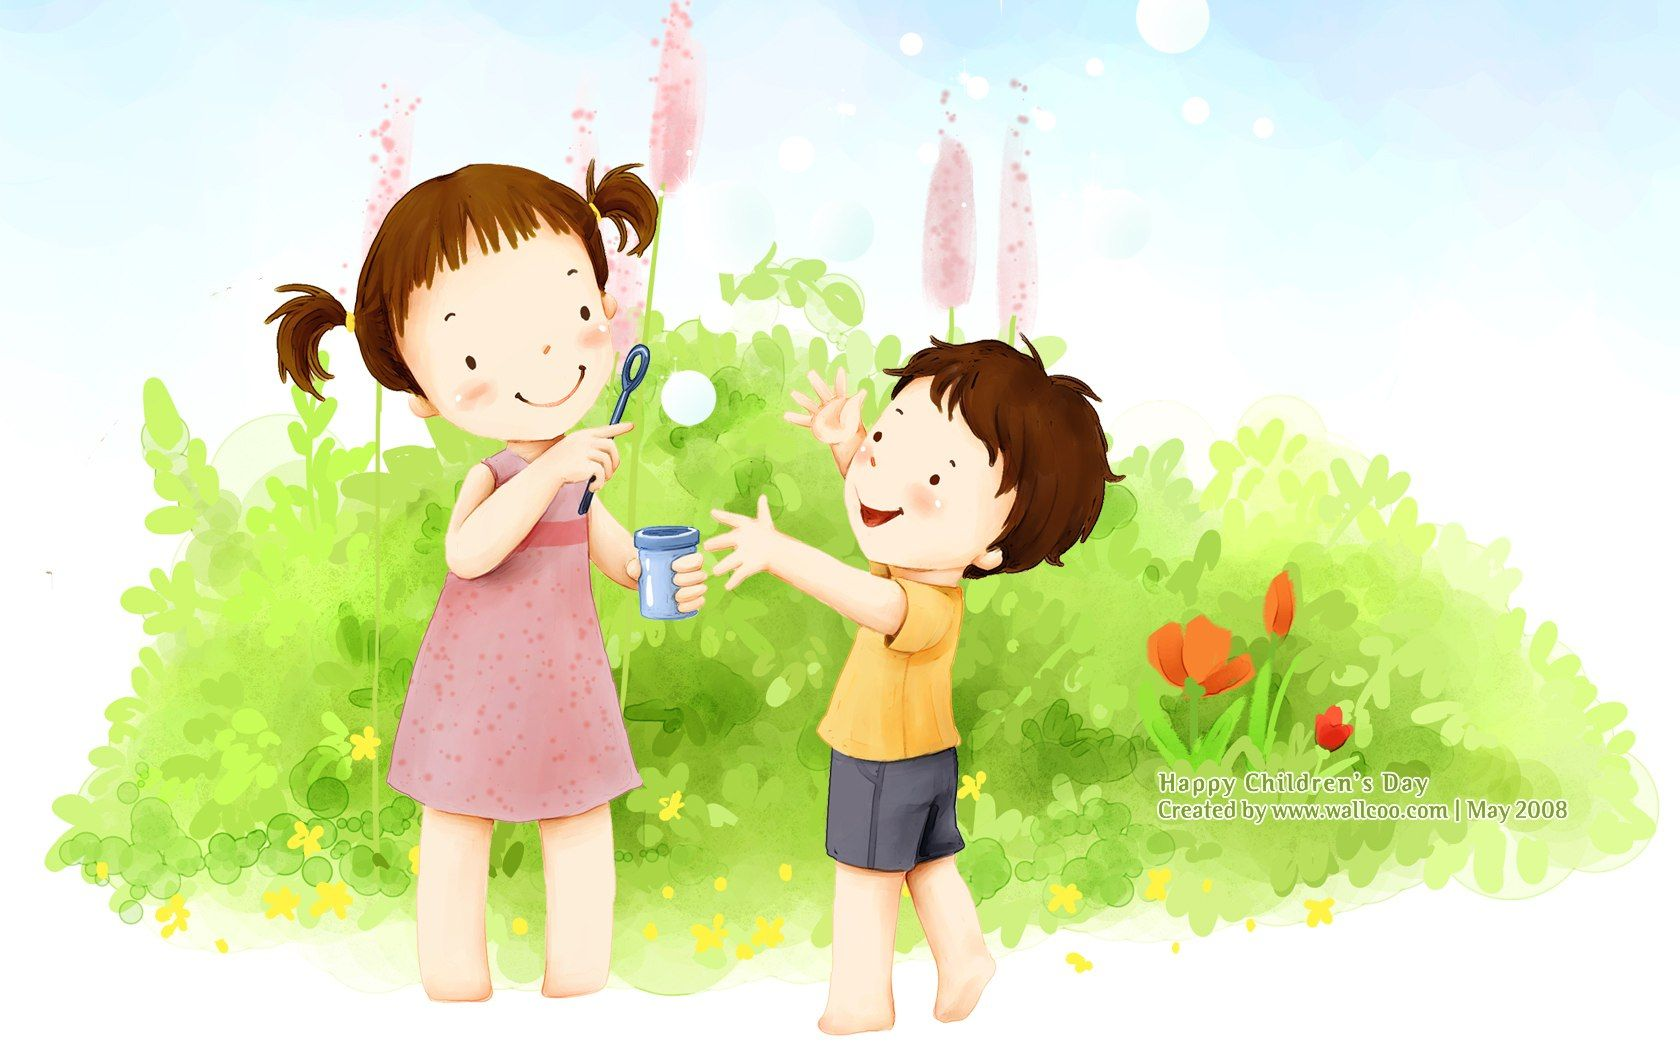 illustration art of children e01 psd 021 jpg - Pictures For Children